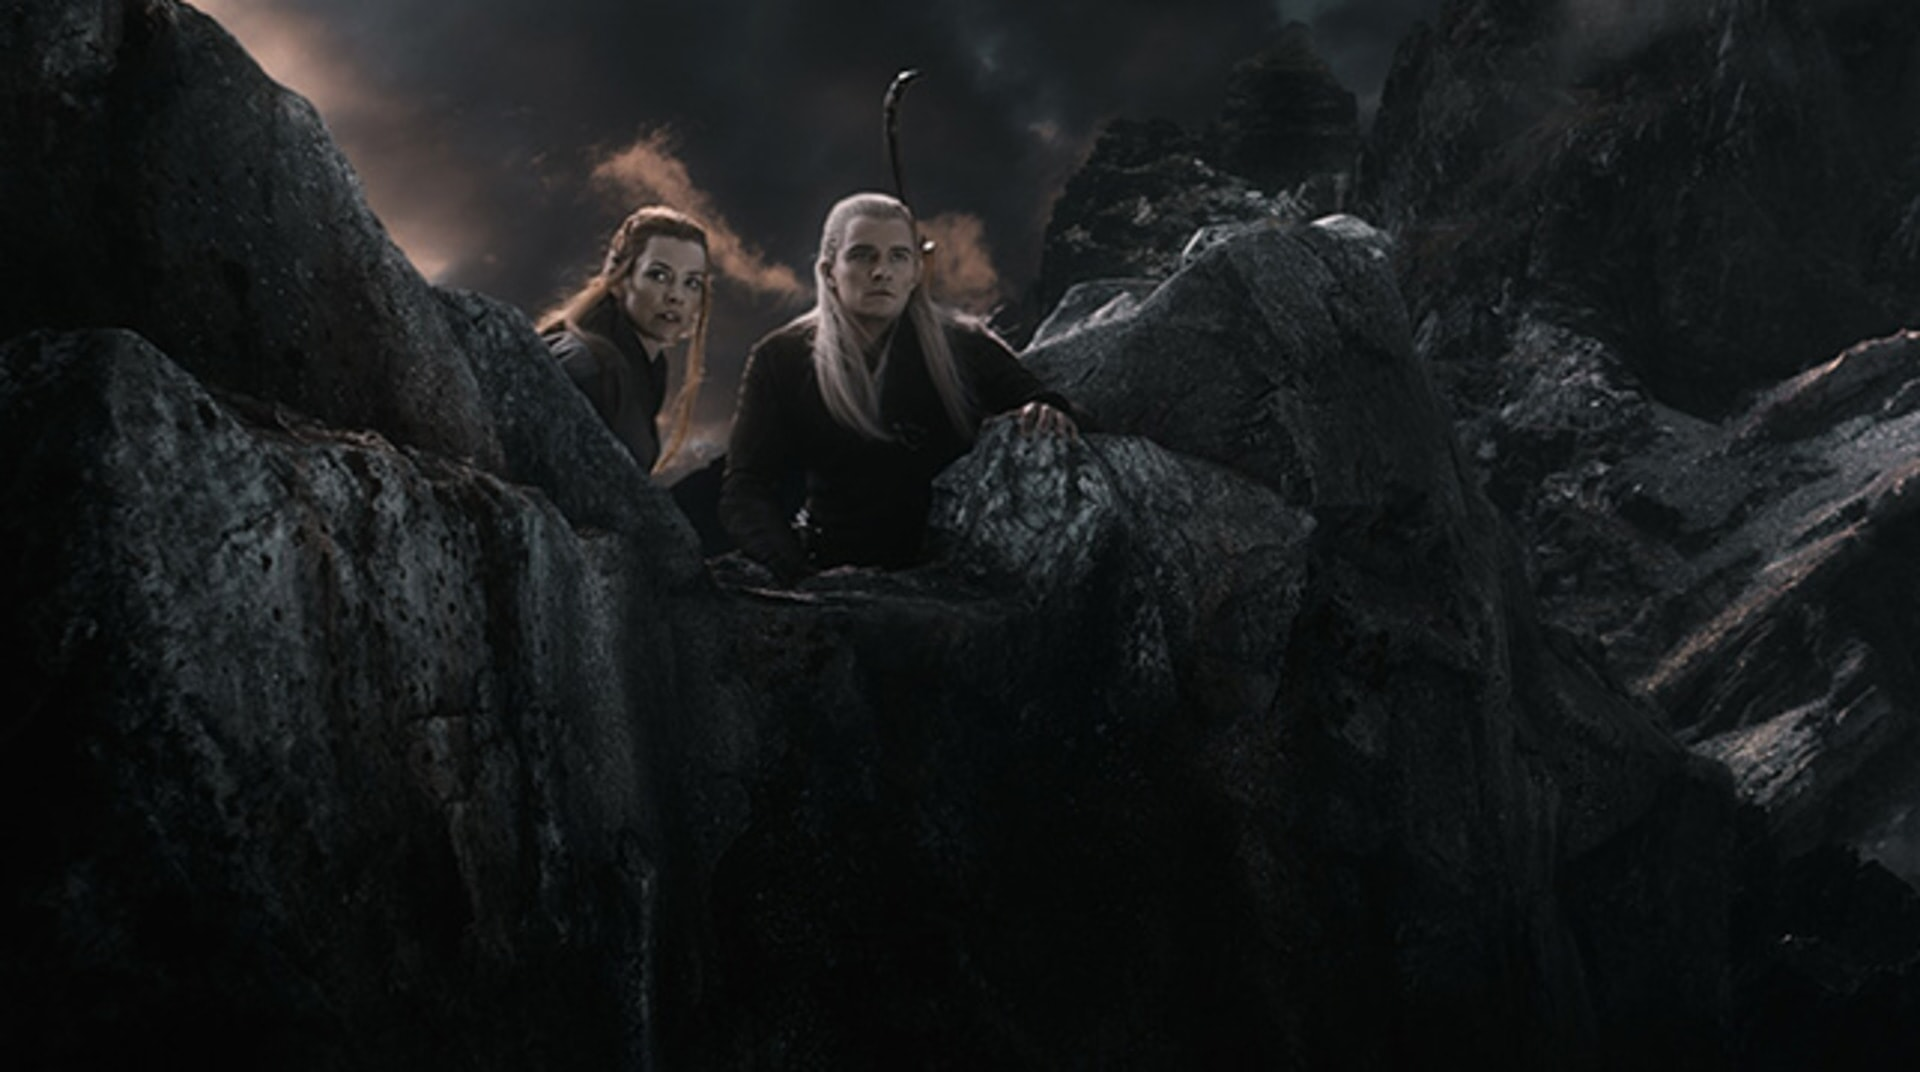 The Hobbit: The Battle of the Five Armies - Image 39